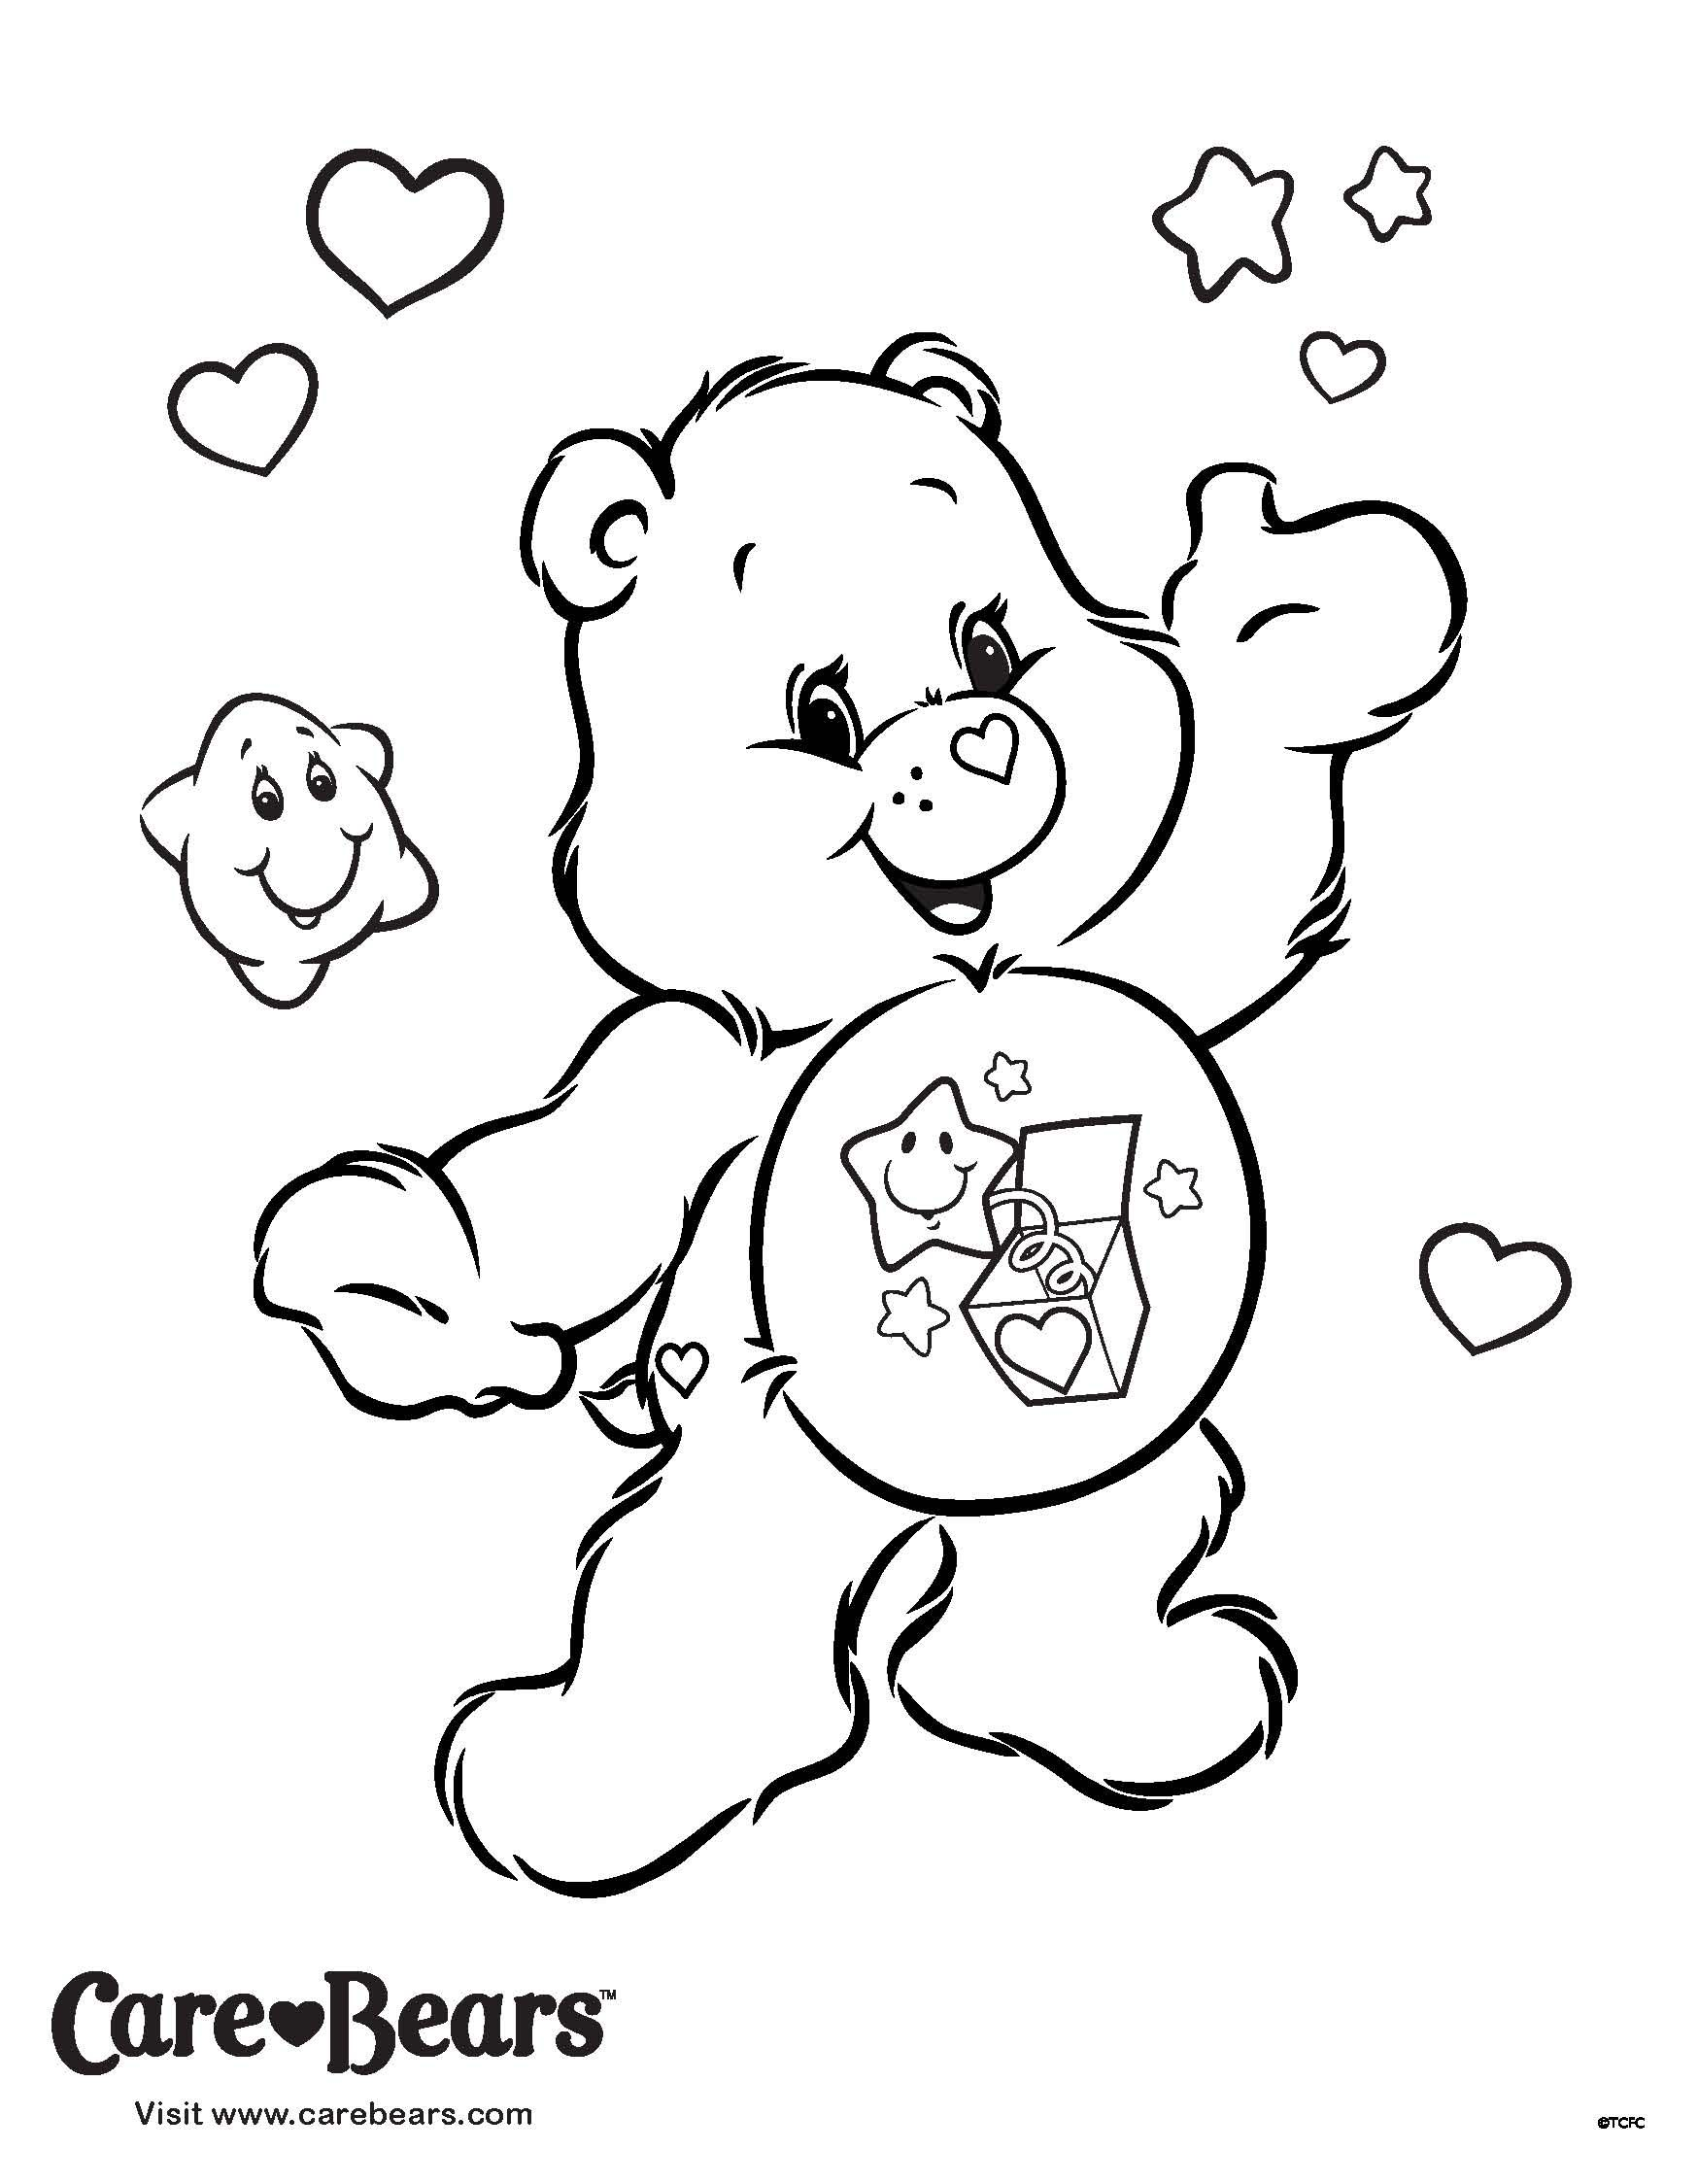 Surprise someone special today by coloring Surprise Bear